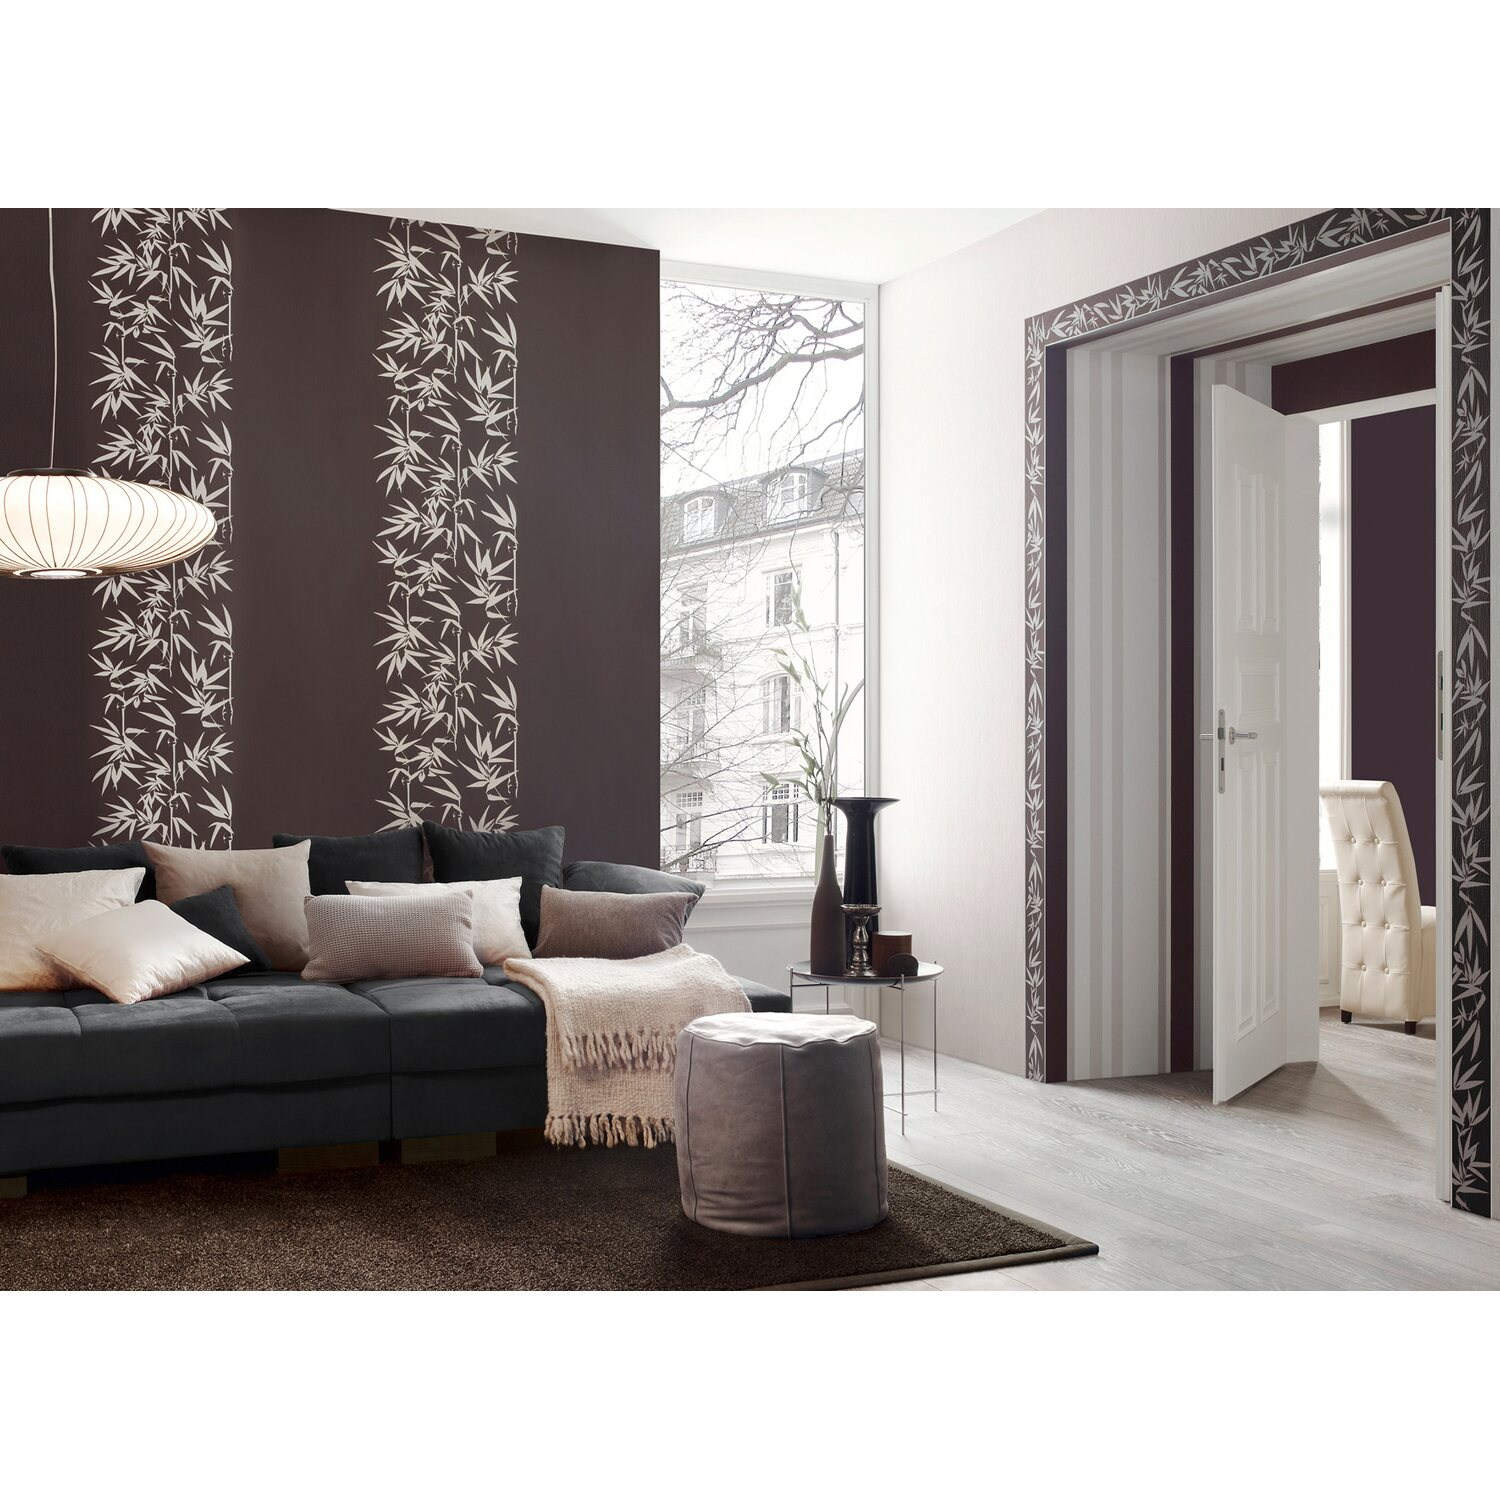 jette vliestapete bambus braun kaufen bei obi. Black Bedroom Furniture Sets. Home Design Ideas